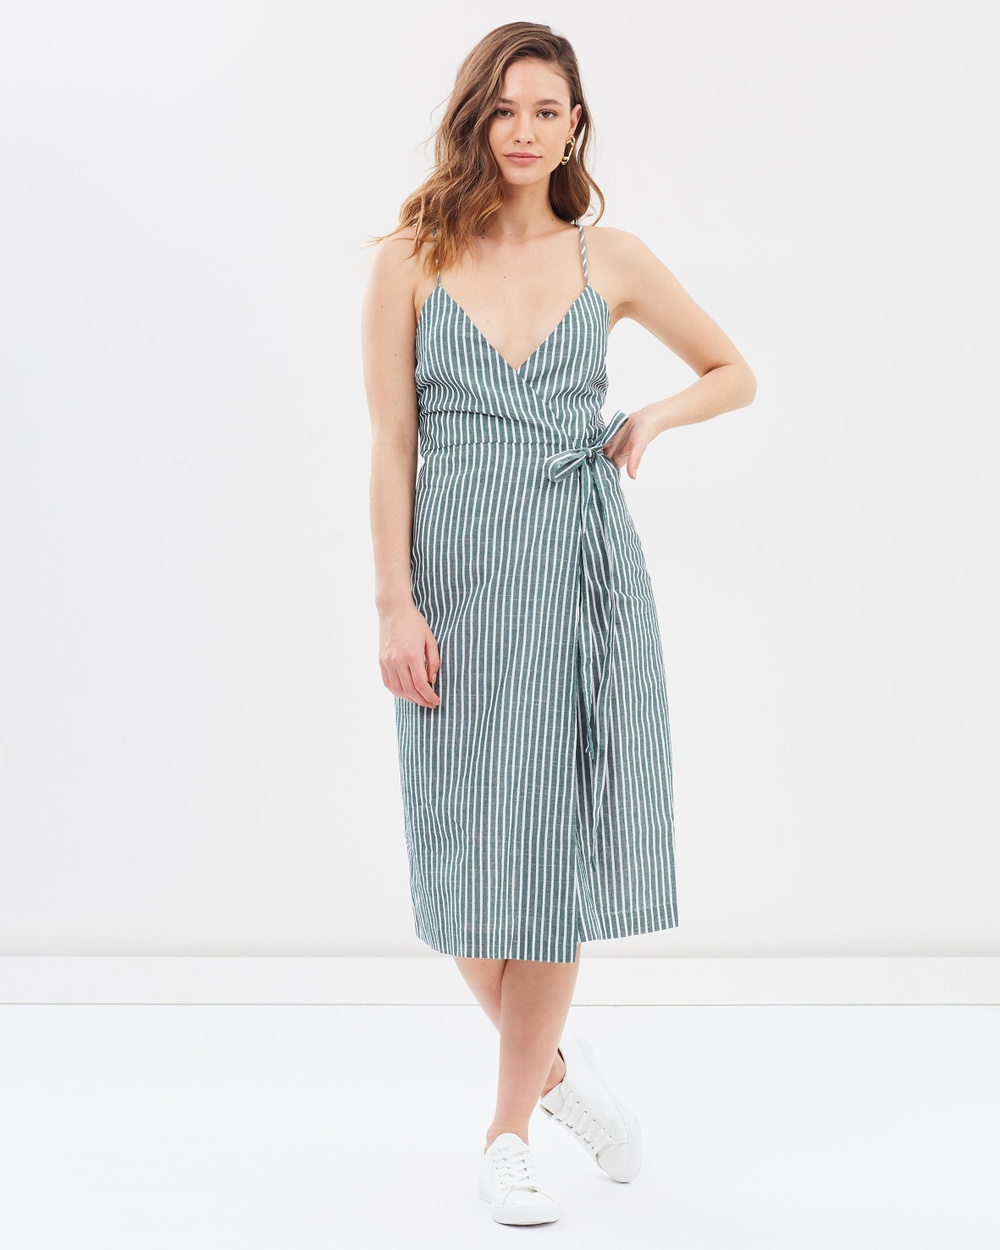 Photo of Nude Lucy Green Stripe Malloy Wrap Dress - buy Nude Lucy dresses on sale online